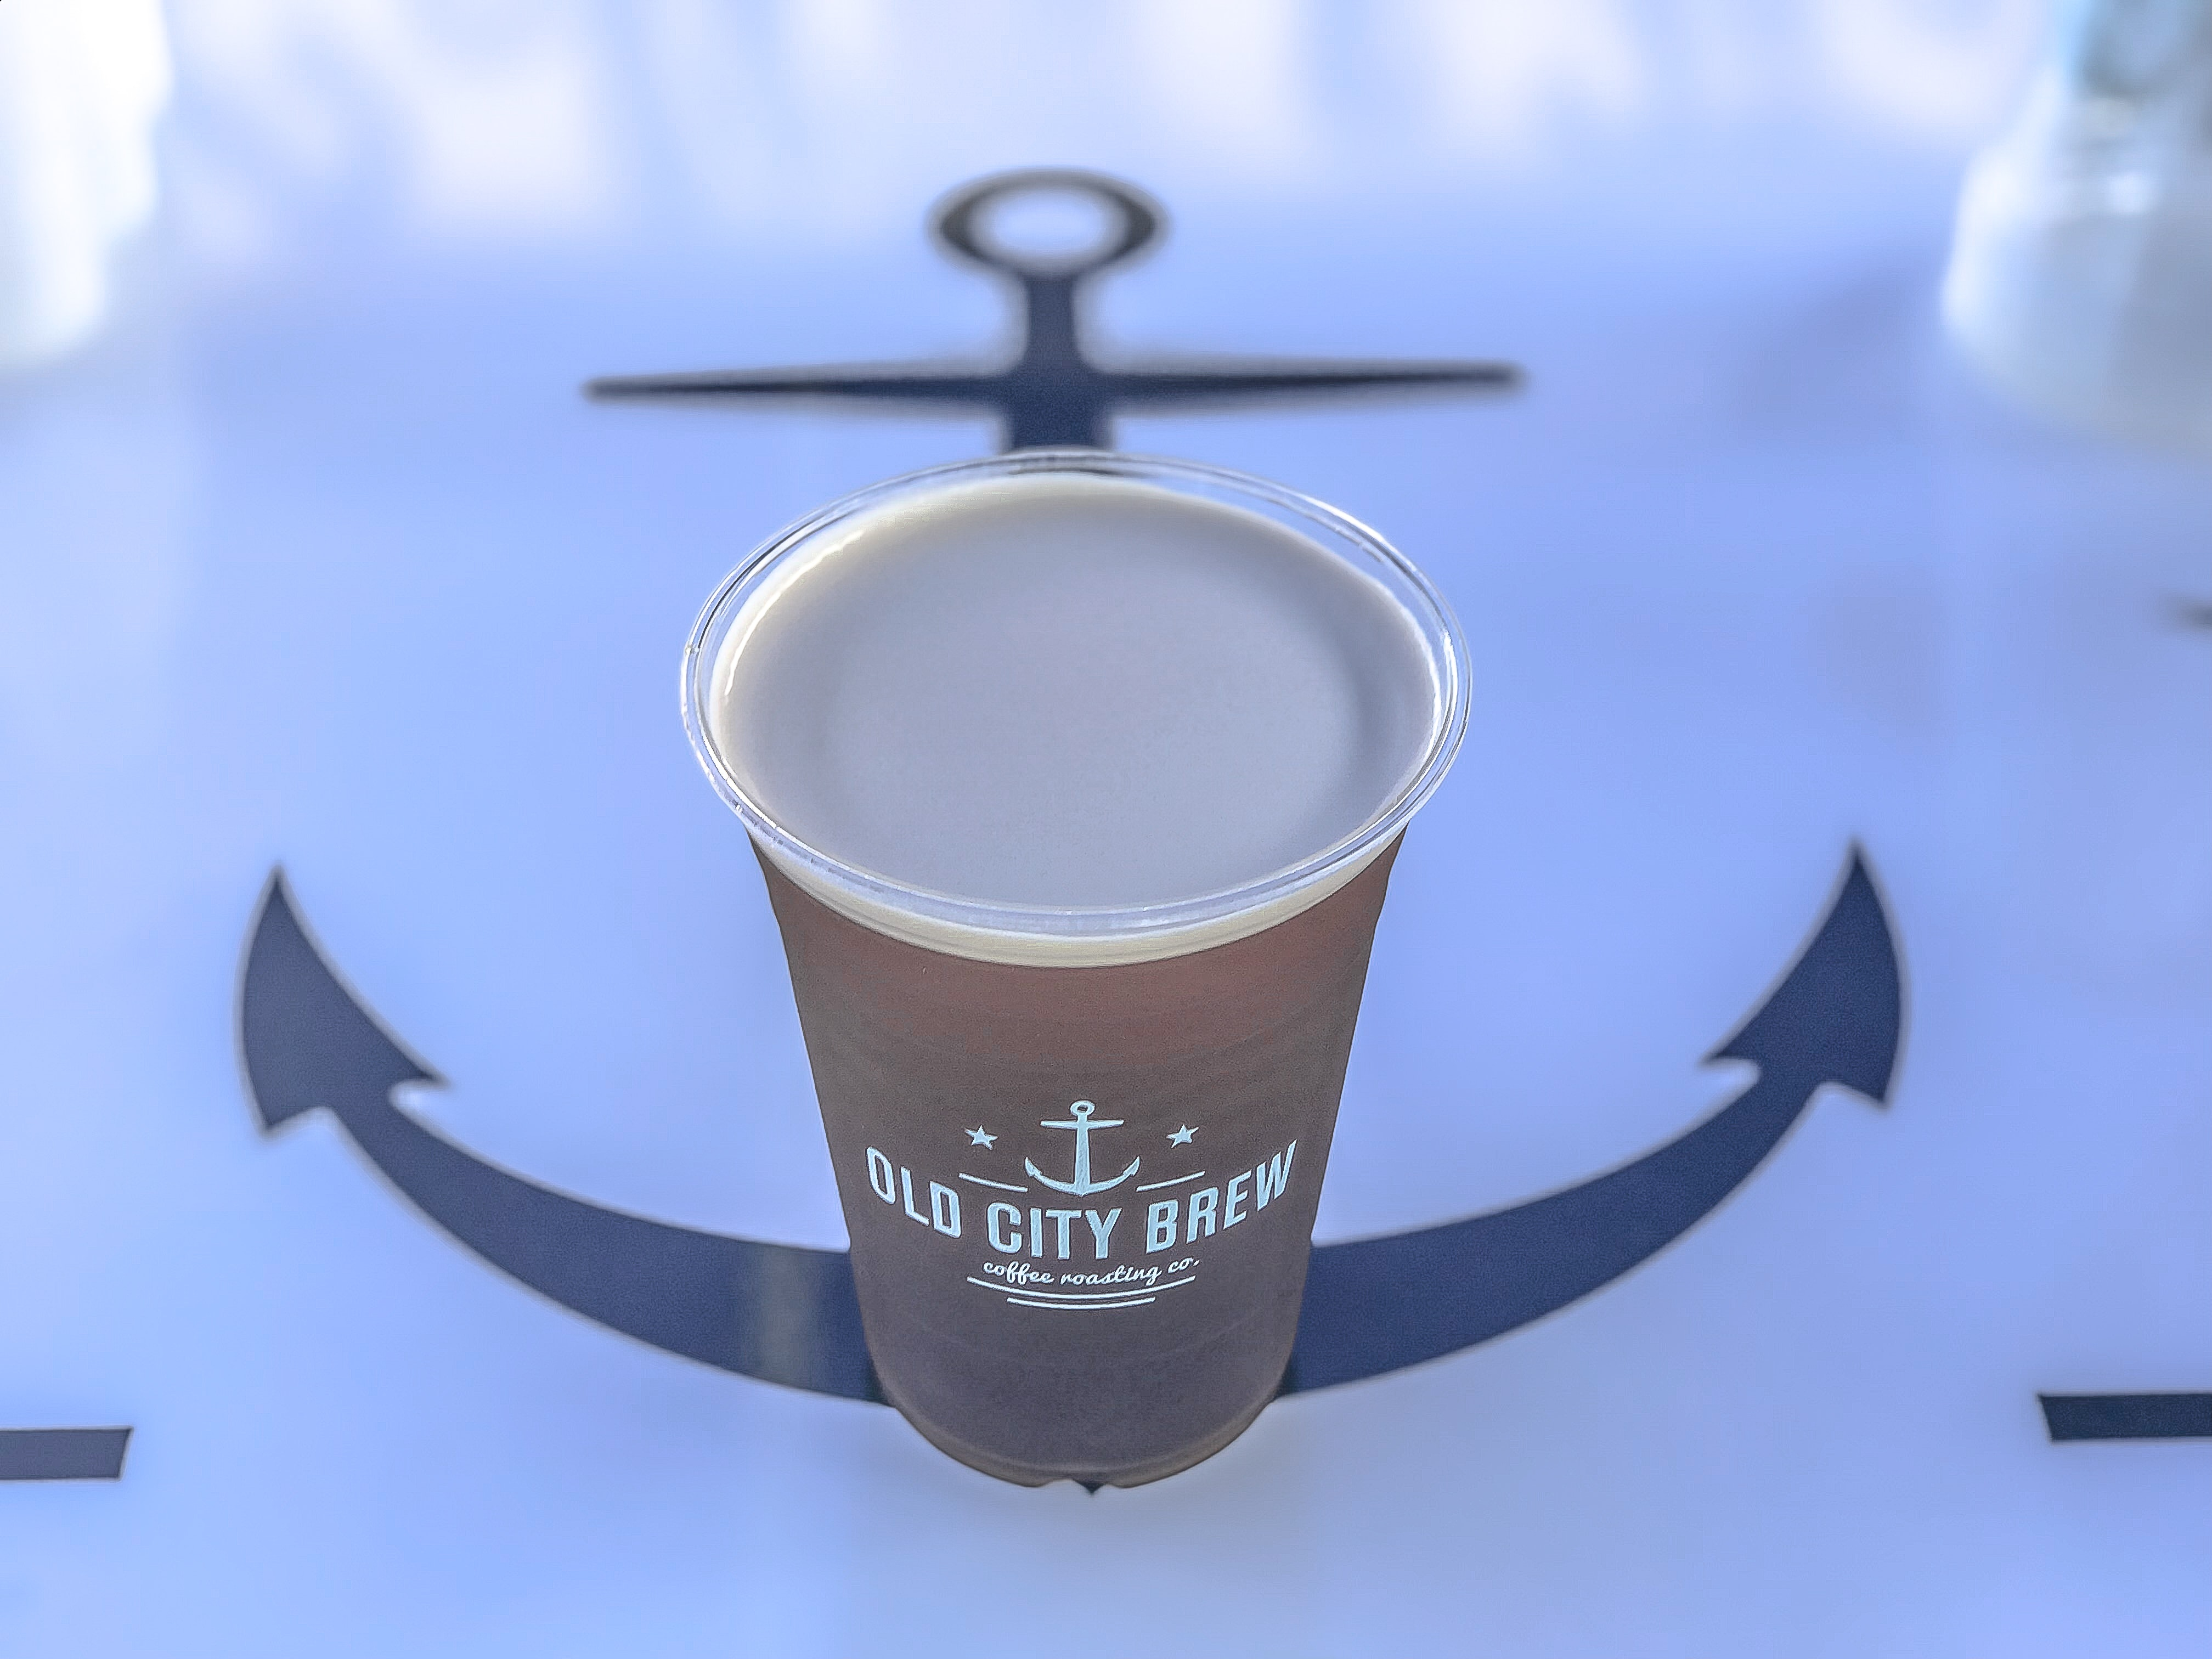 Brown Old City Brew Can, Cup of coffee, Graphic design, Indoors, Outdoors, HQ Photo